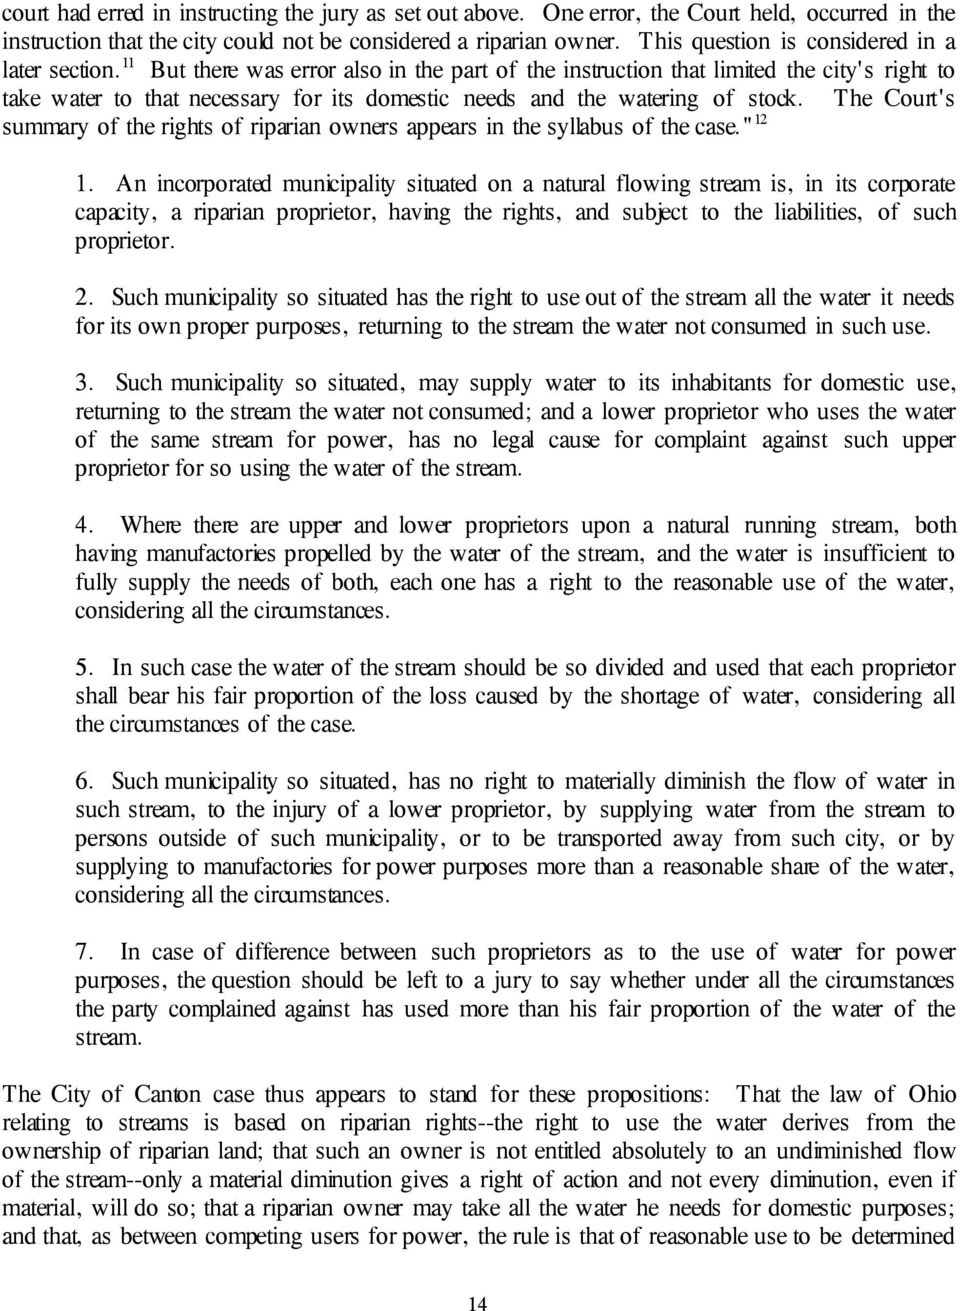 11 But there was error also in the part of the instruction that limited the city's right to take water to that necessary for its domestic needs and the watering of stock.